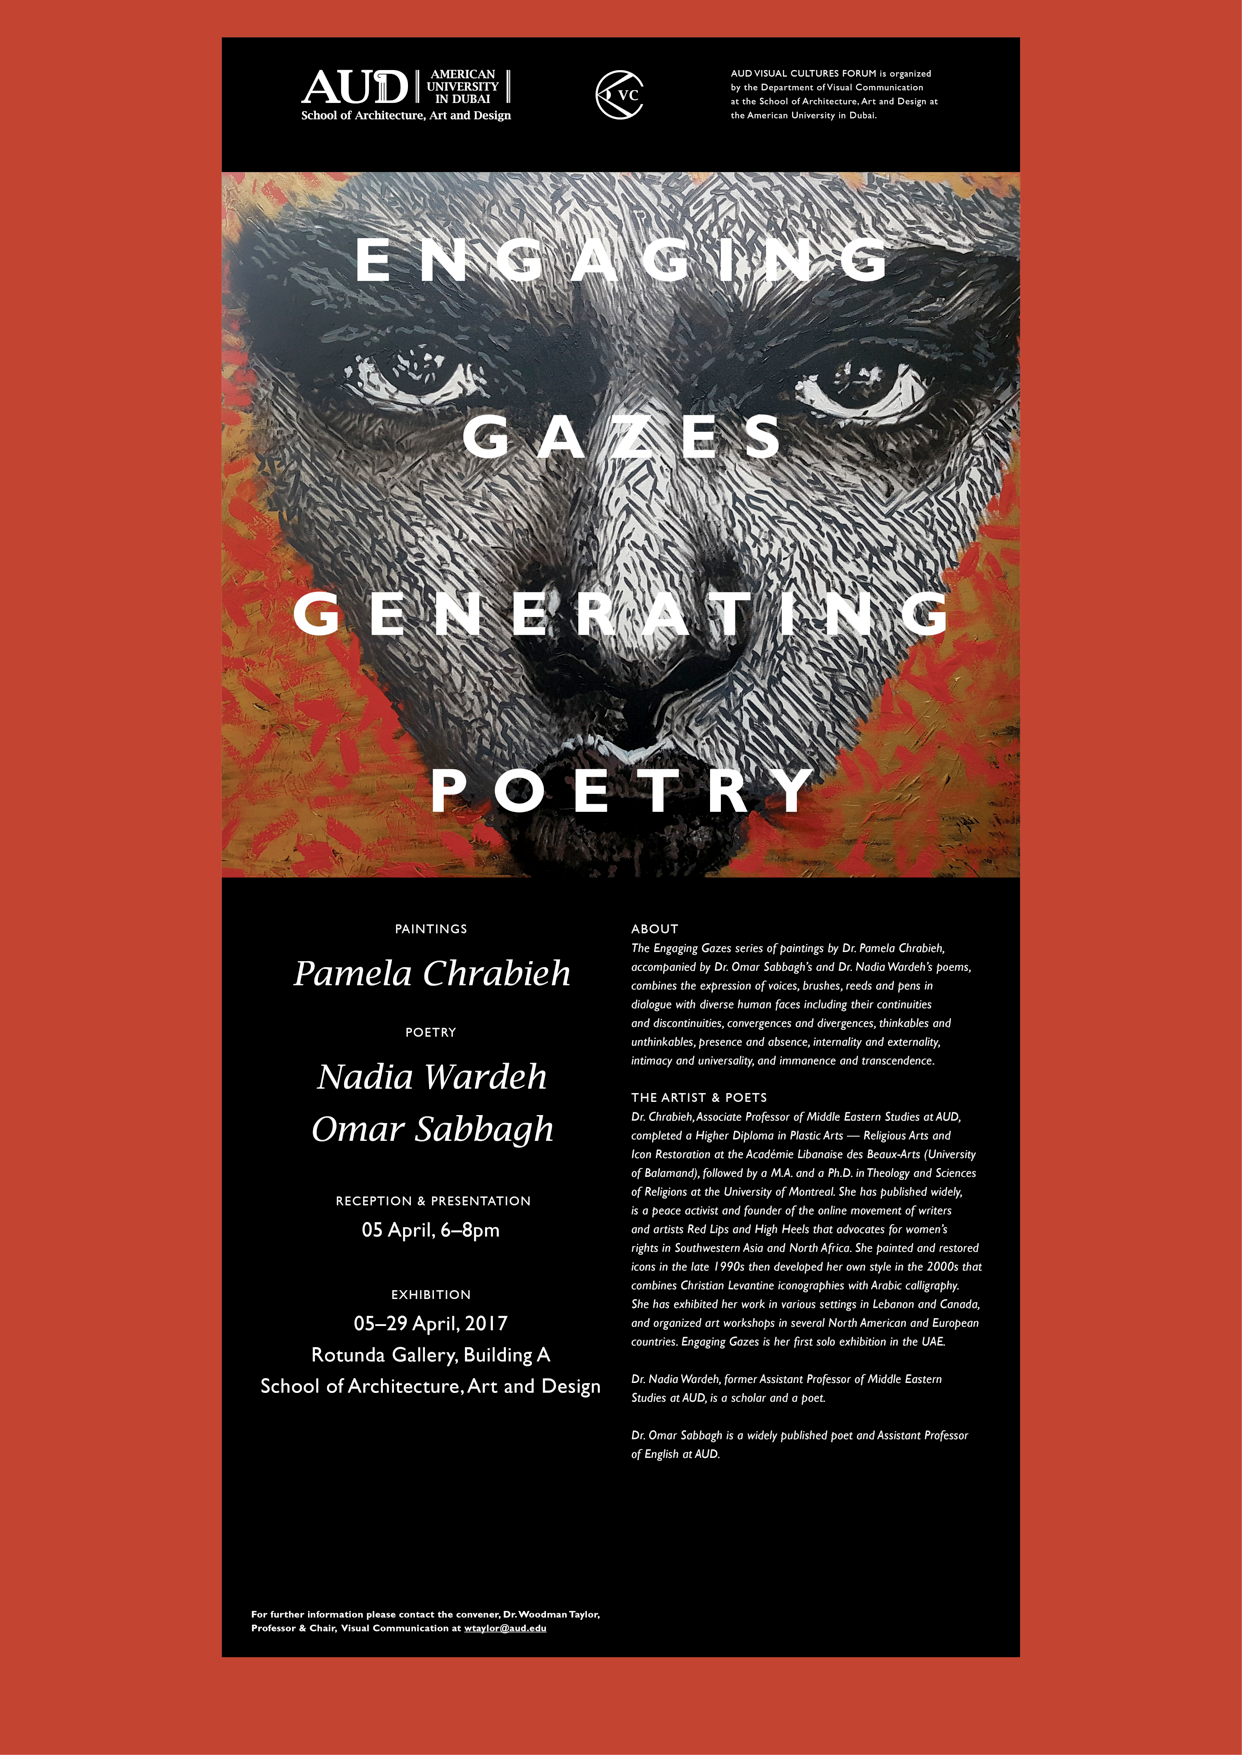 pamela chrabieh engaging gazes exhibition poster